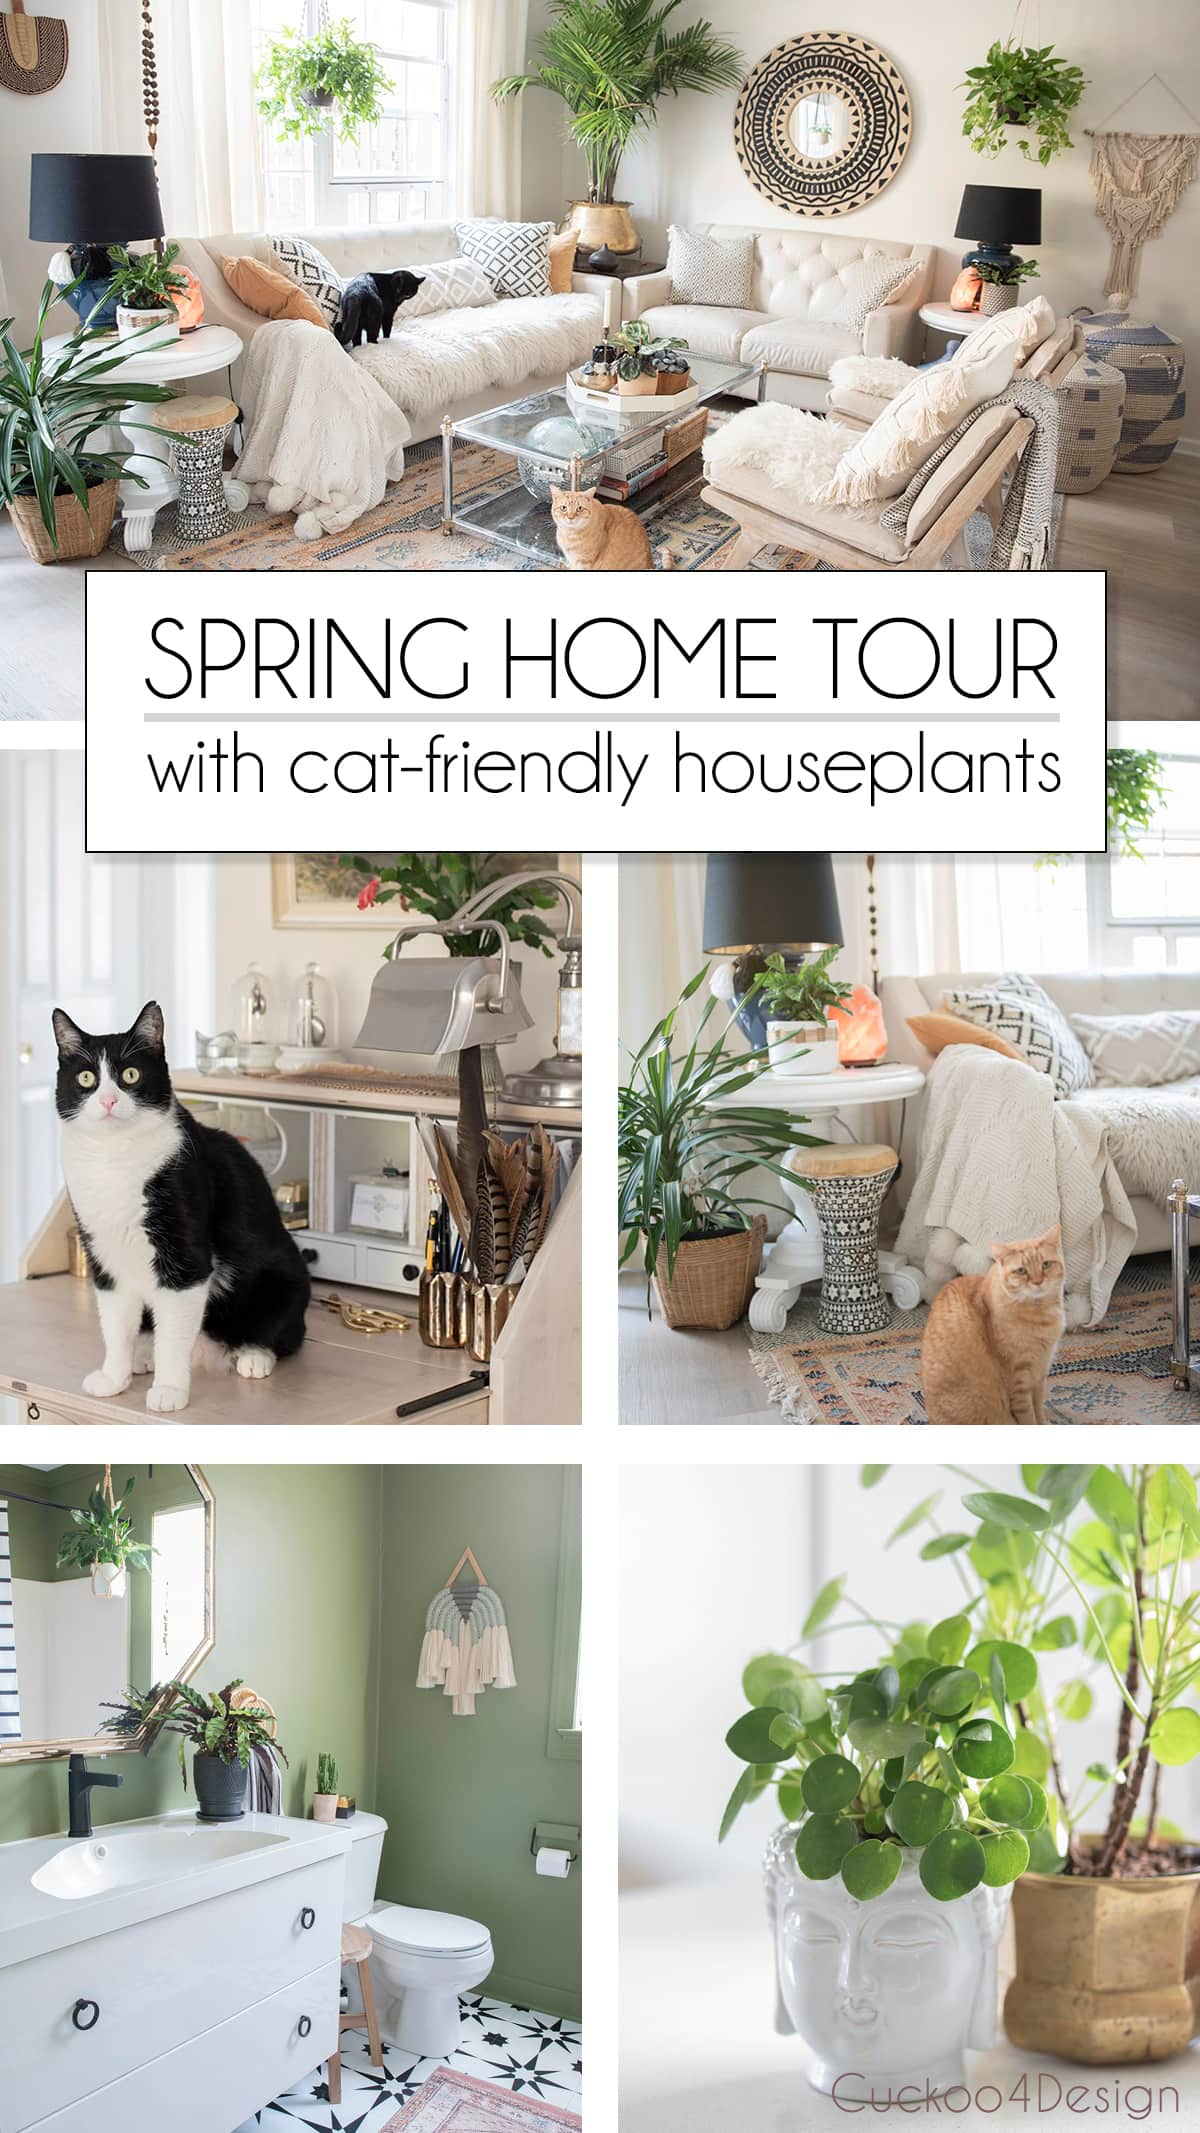 spring home tour with beautiful house plants that are cat-friendly